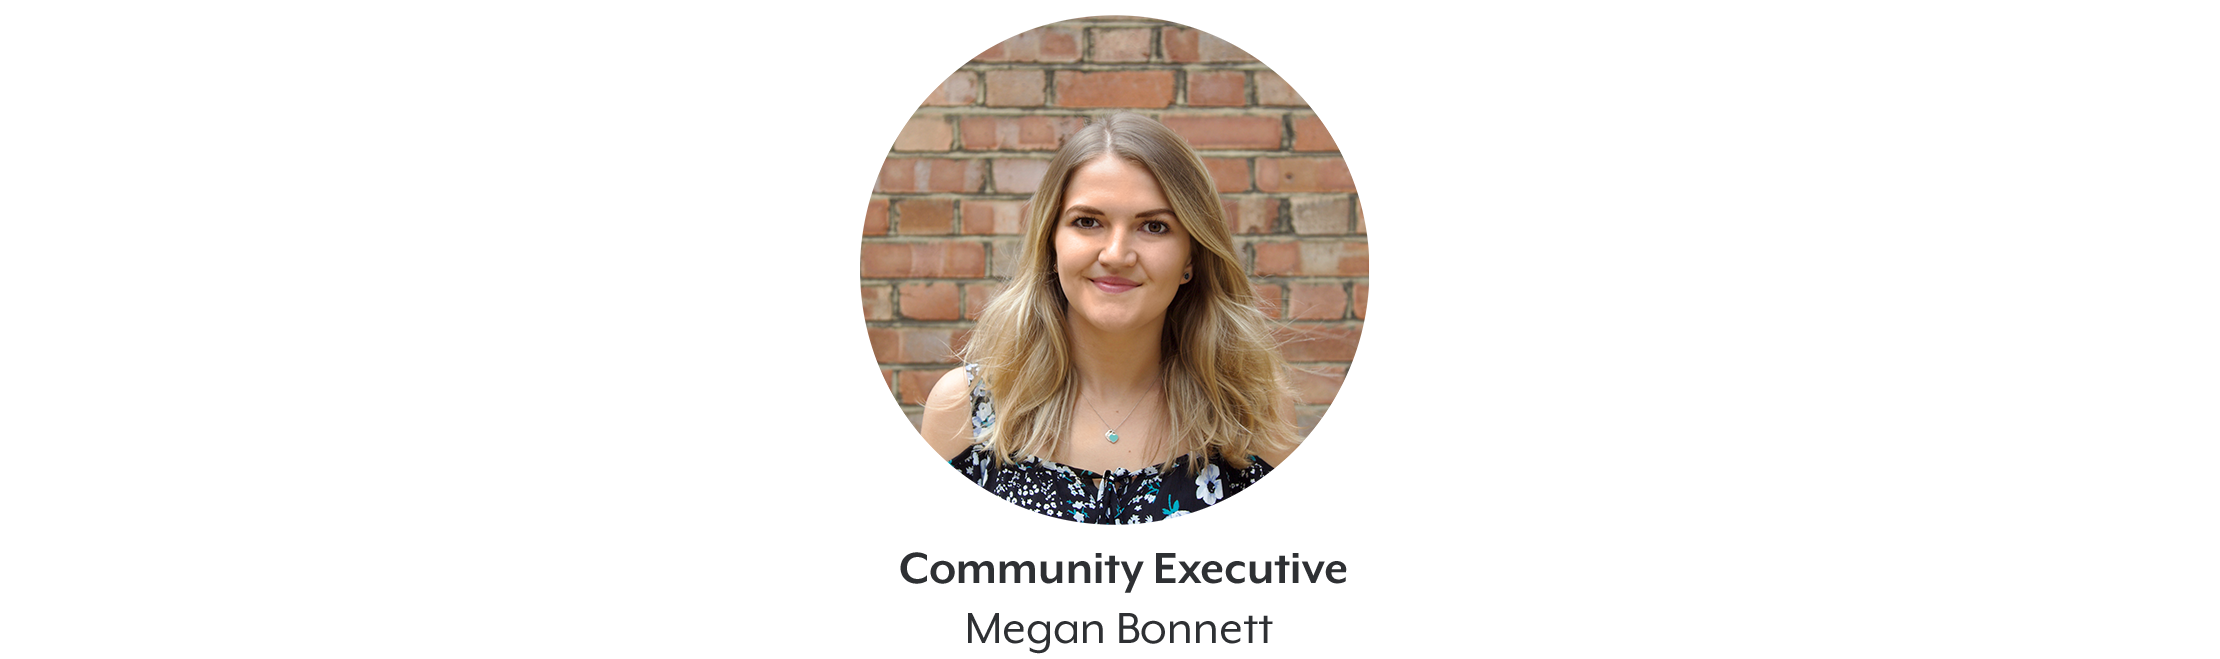 Image of Authors face with text that says: community executive Megan Bonnett